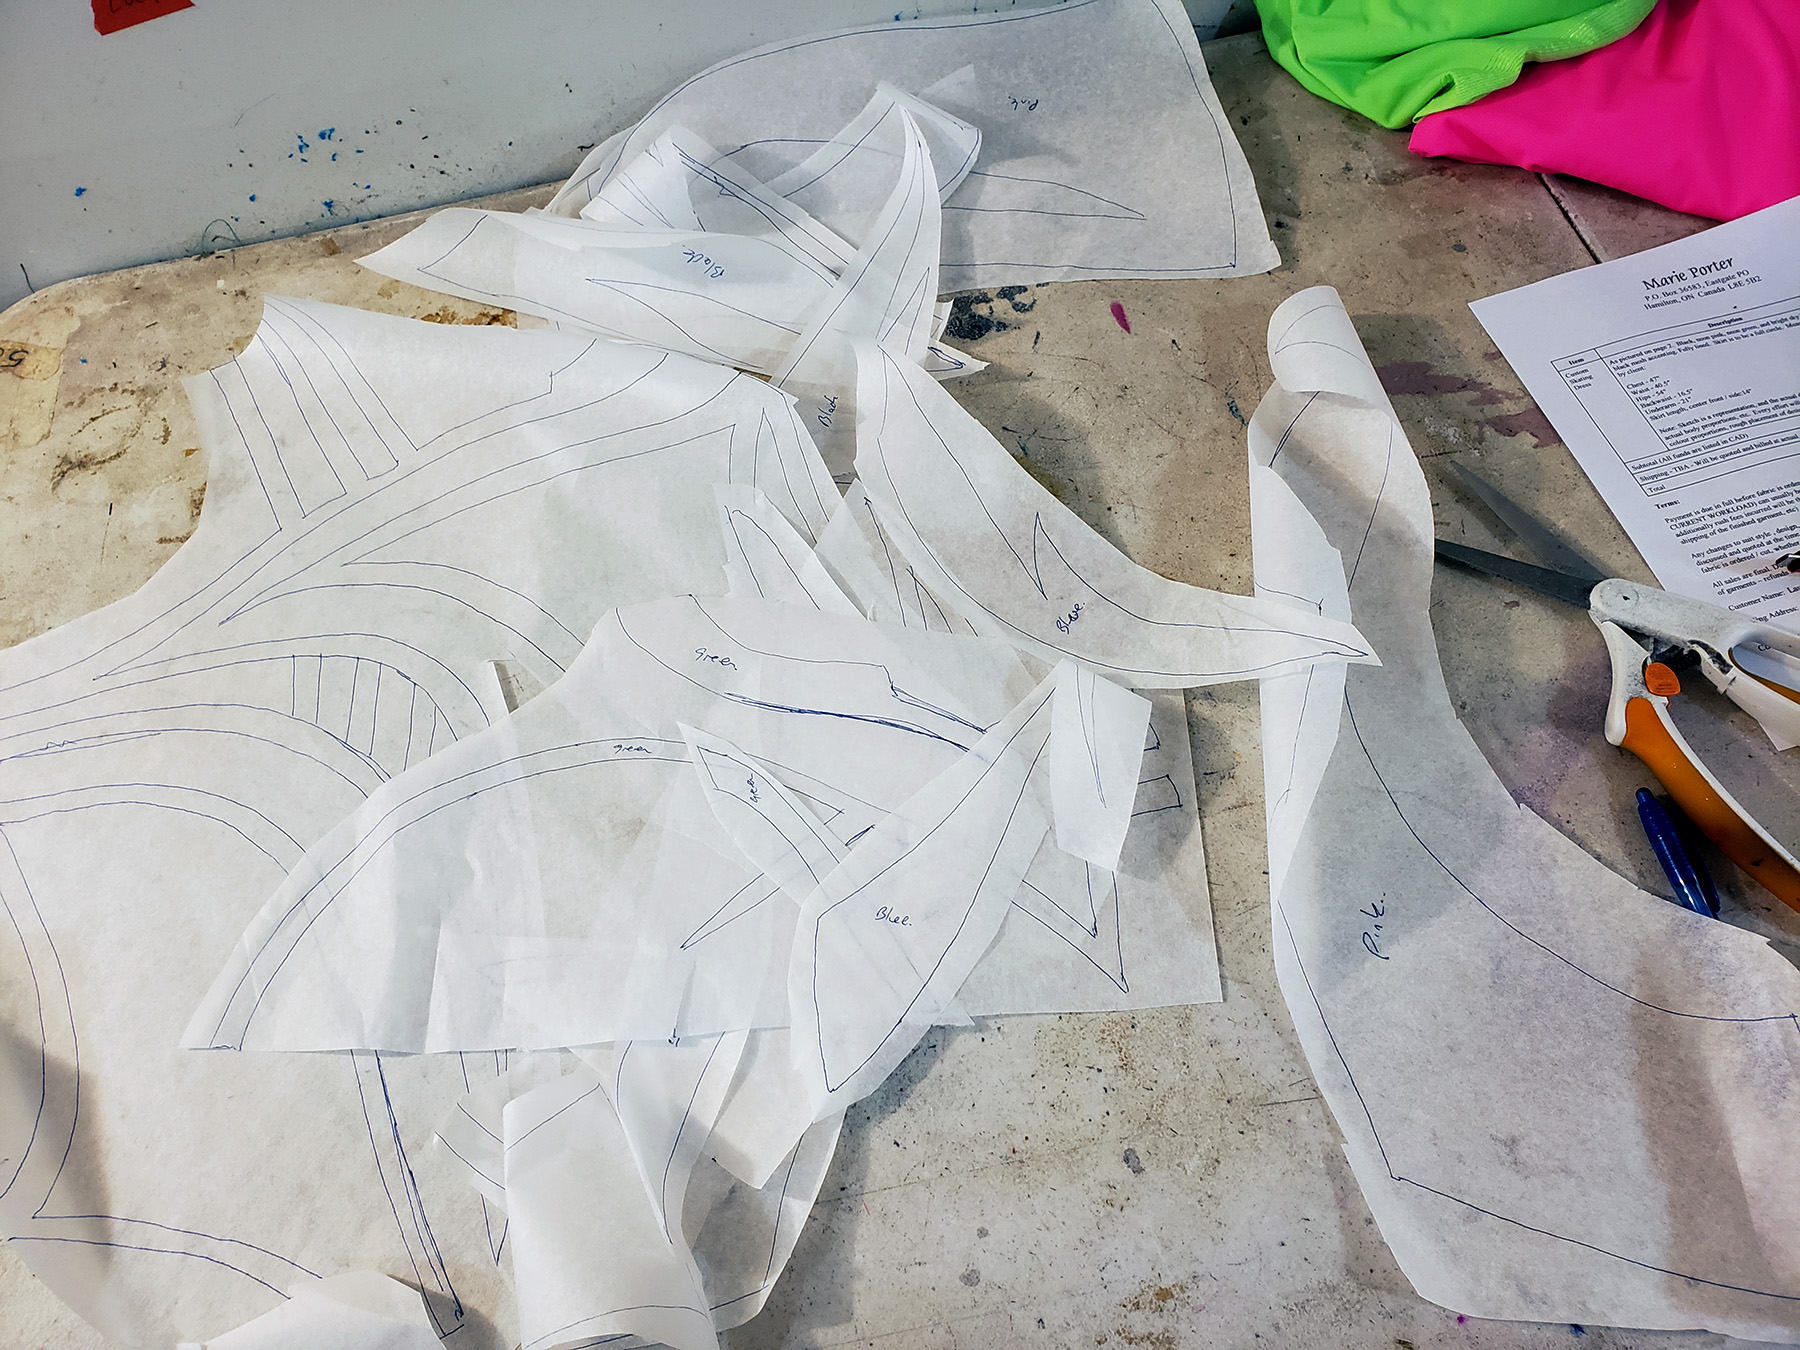 A pile of hand drawn pattern pieces made from exam table paper, on a grey work table.